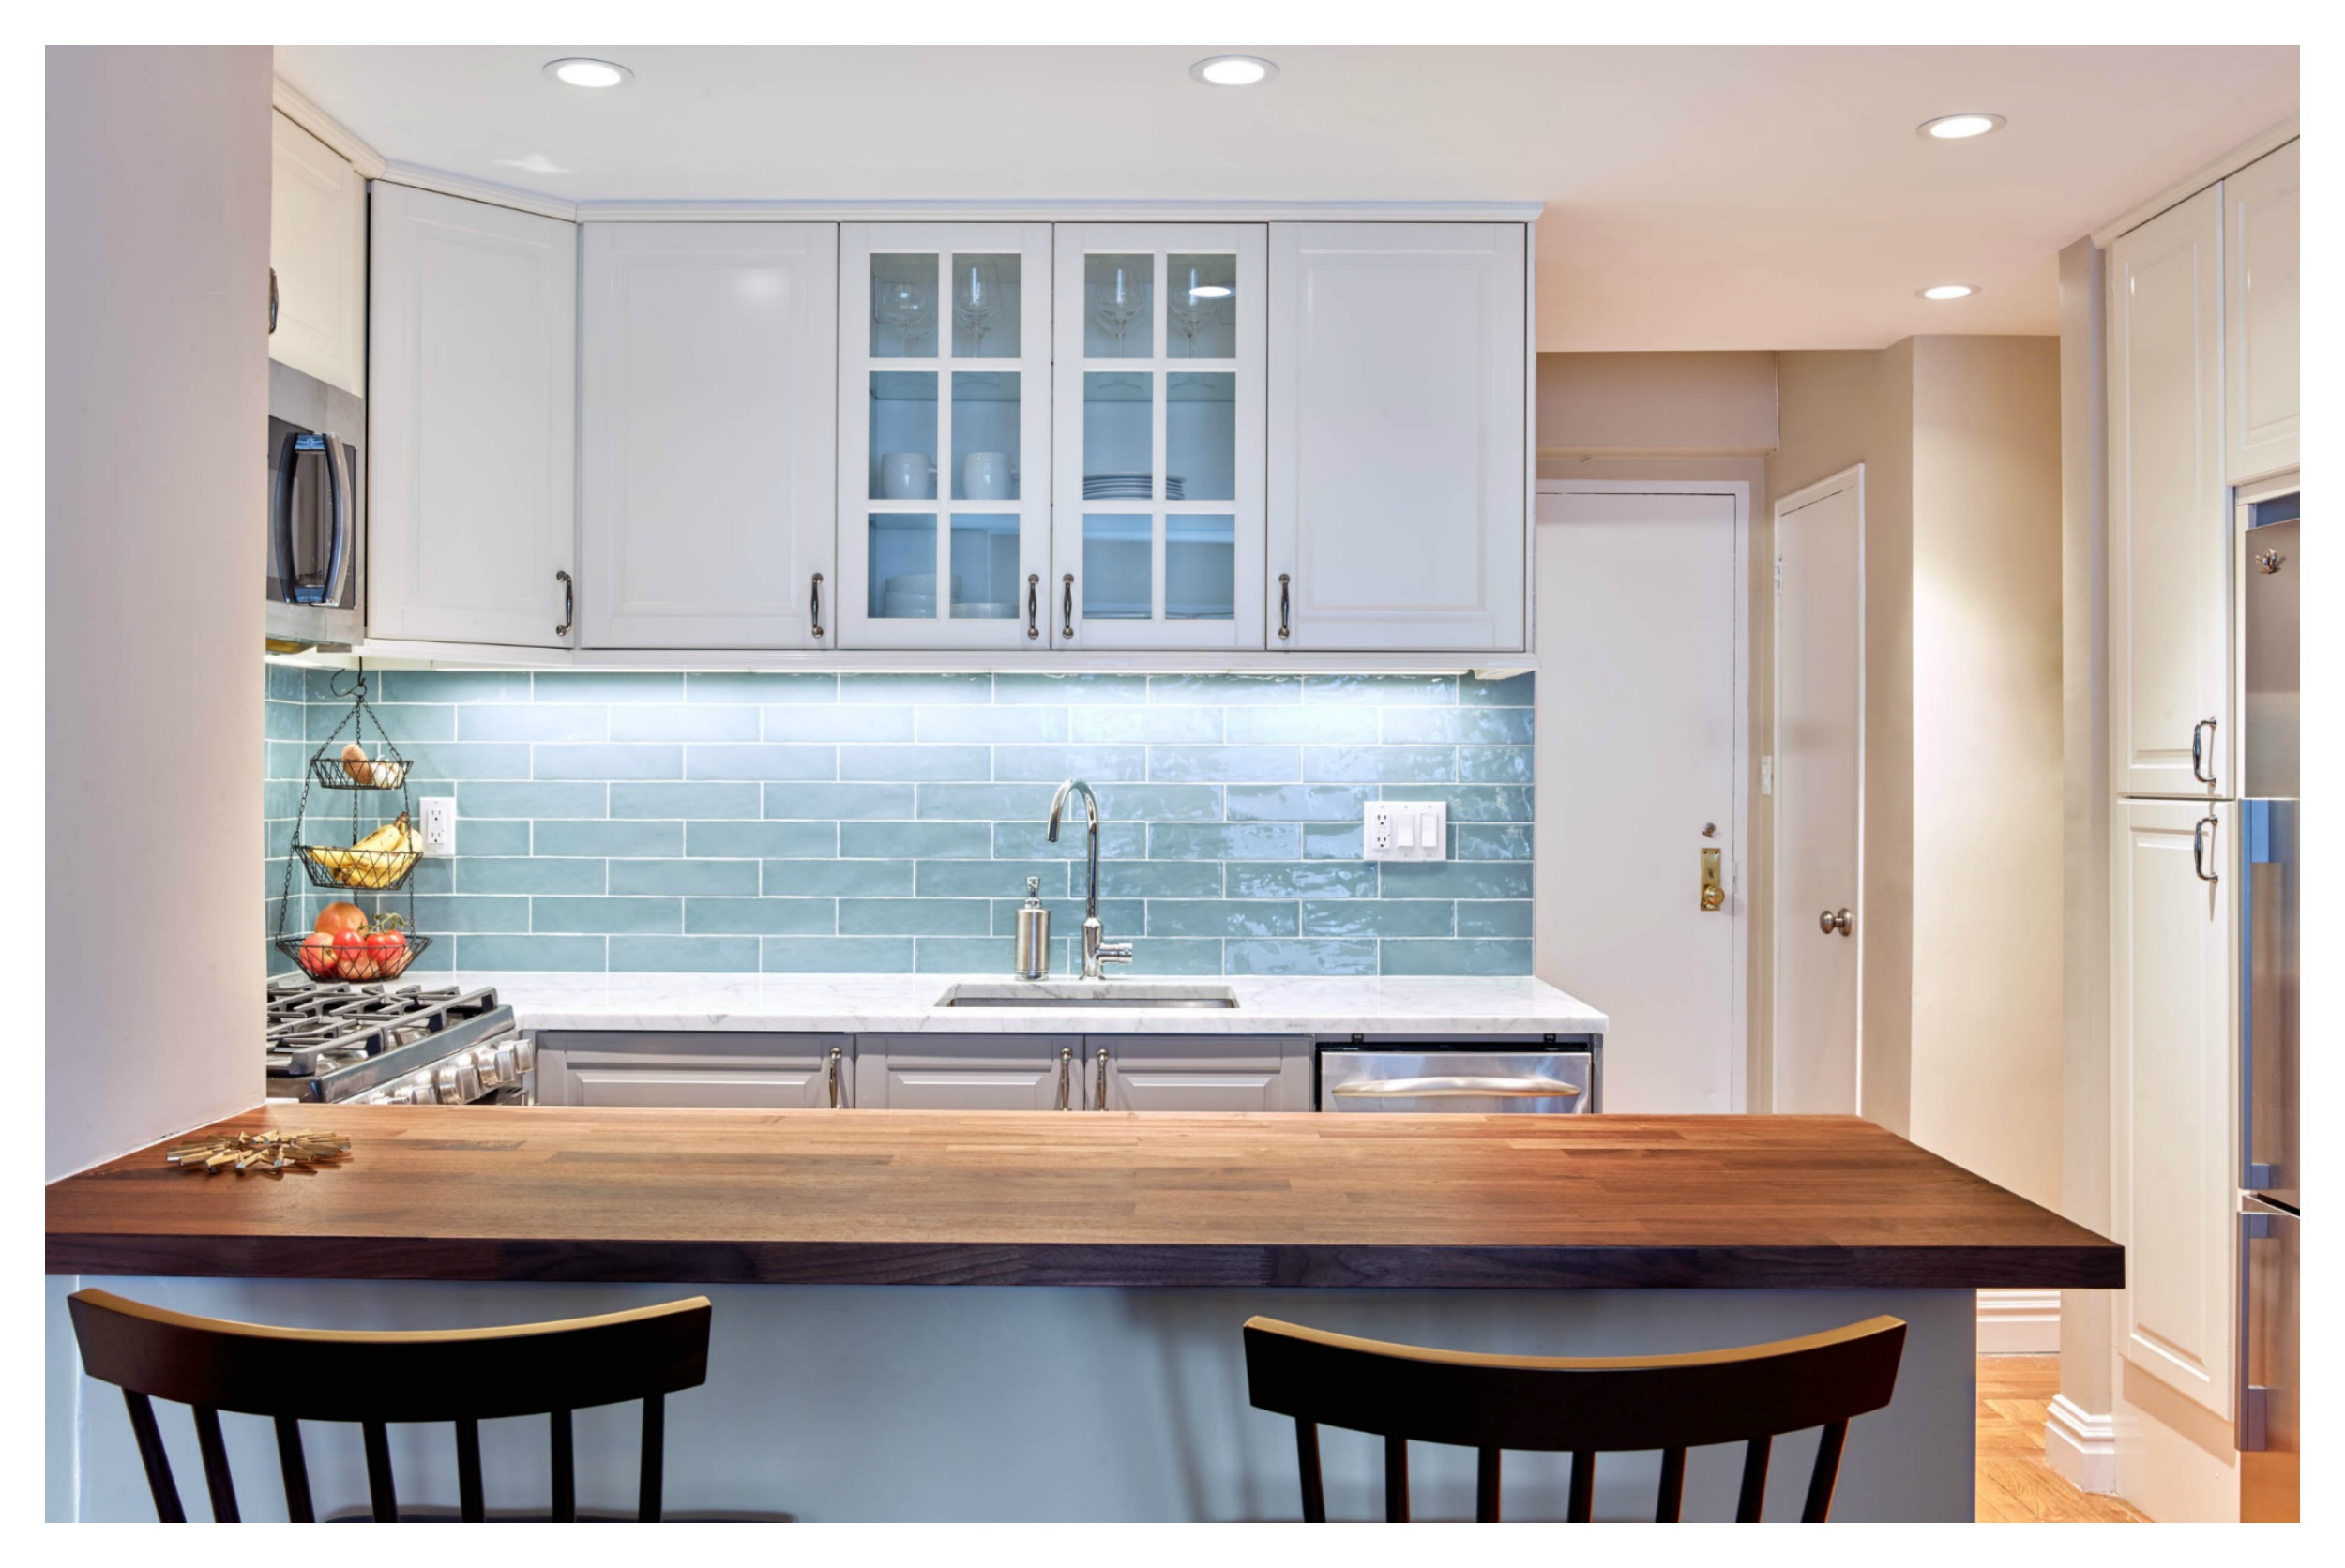 brooklyn-heights-kitchen-renovation-2.jpg